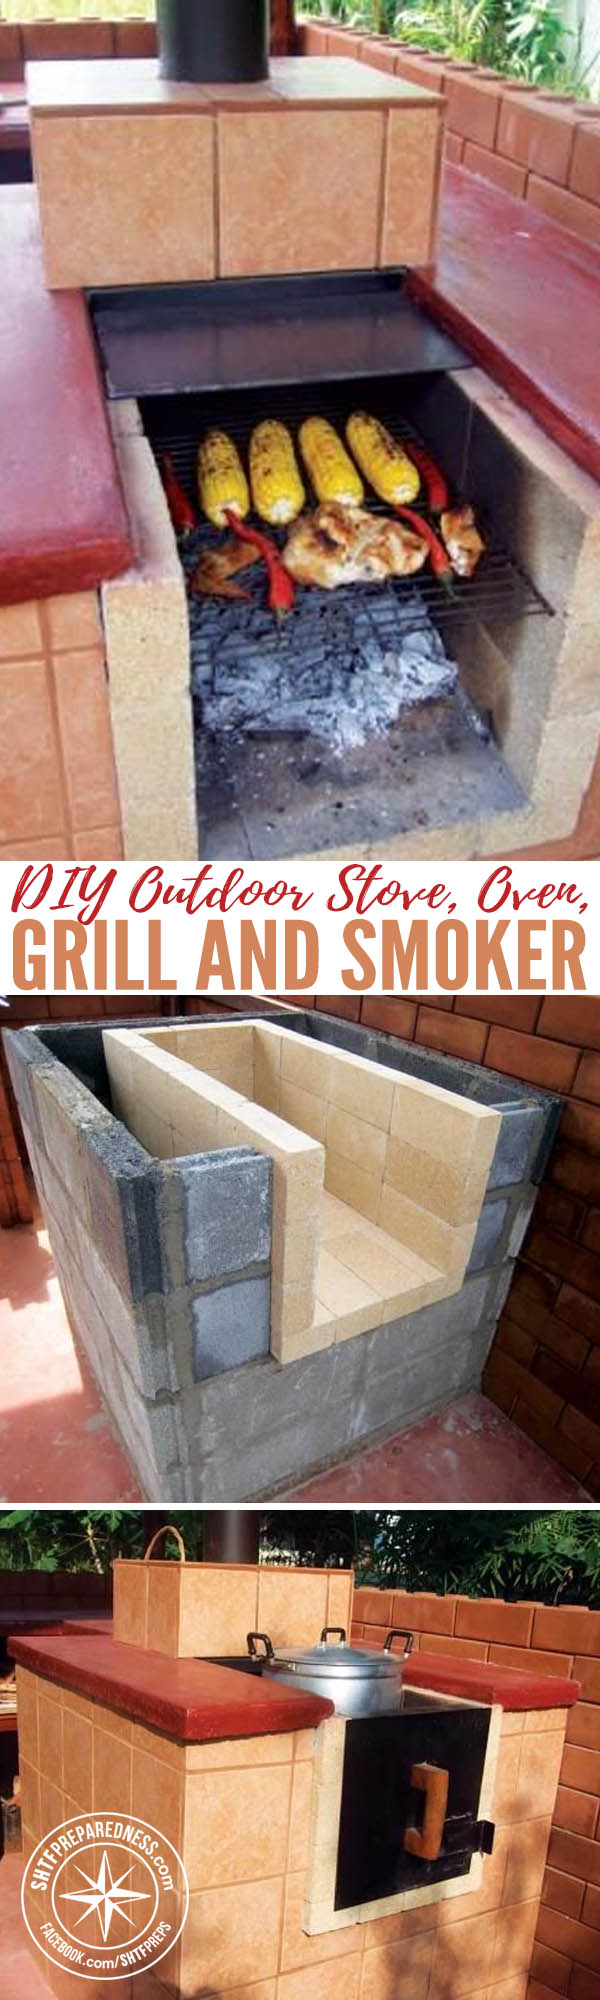 diy outdoor stove oven grill and smoker